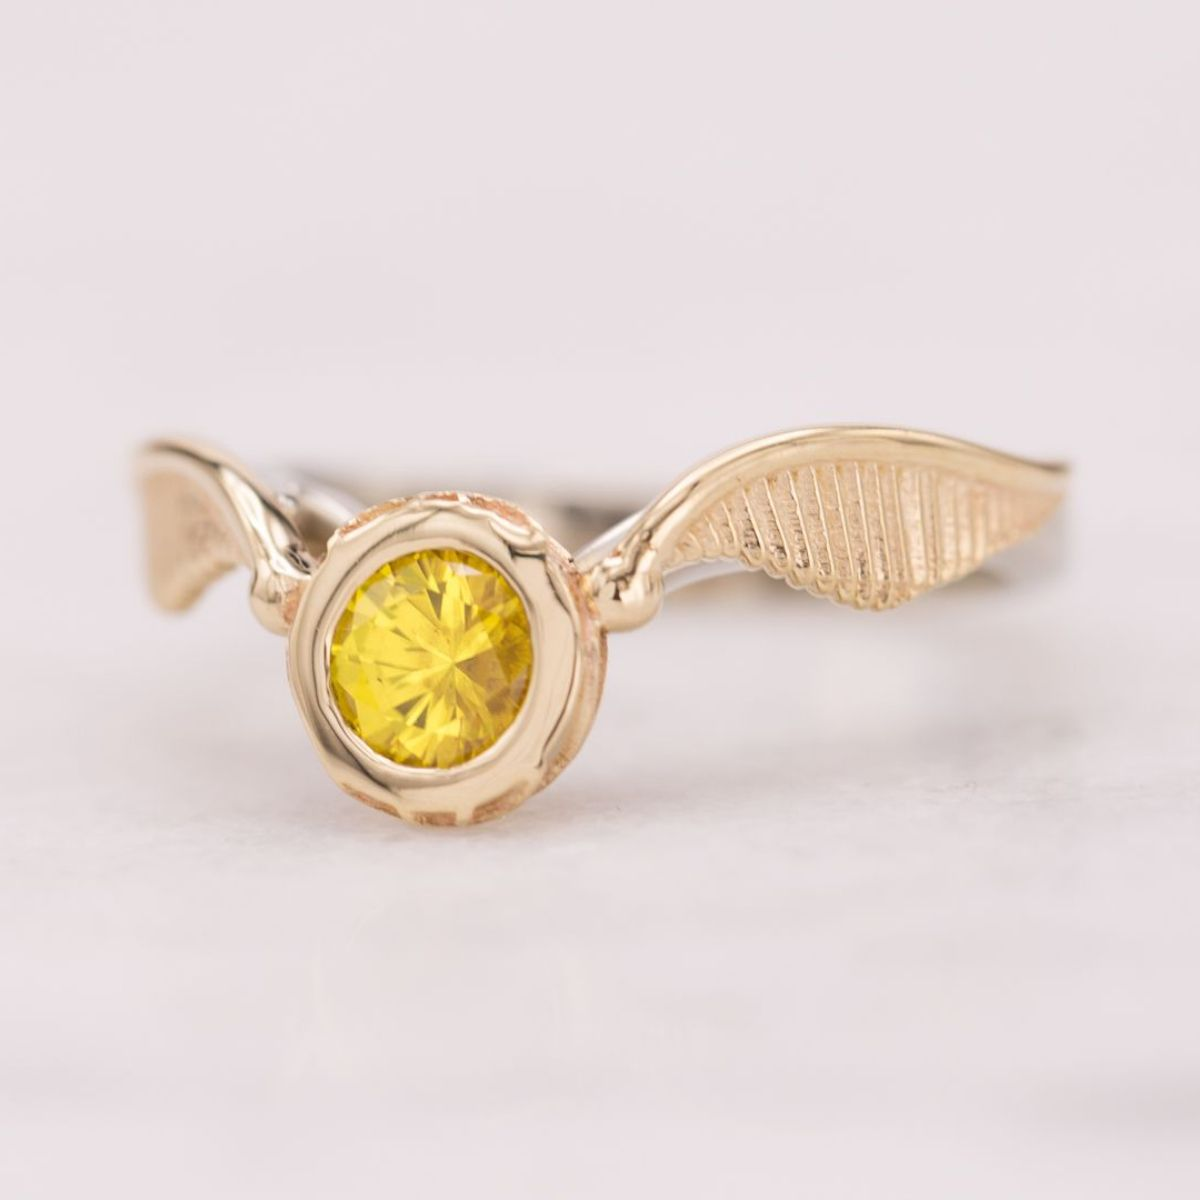 This snitch engagement ring sets a bright yellow sapphire as the center stone in the harry potter fans dream ring